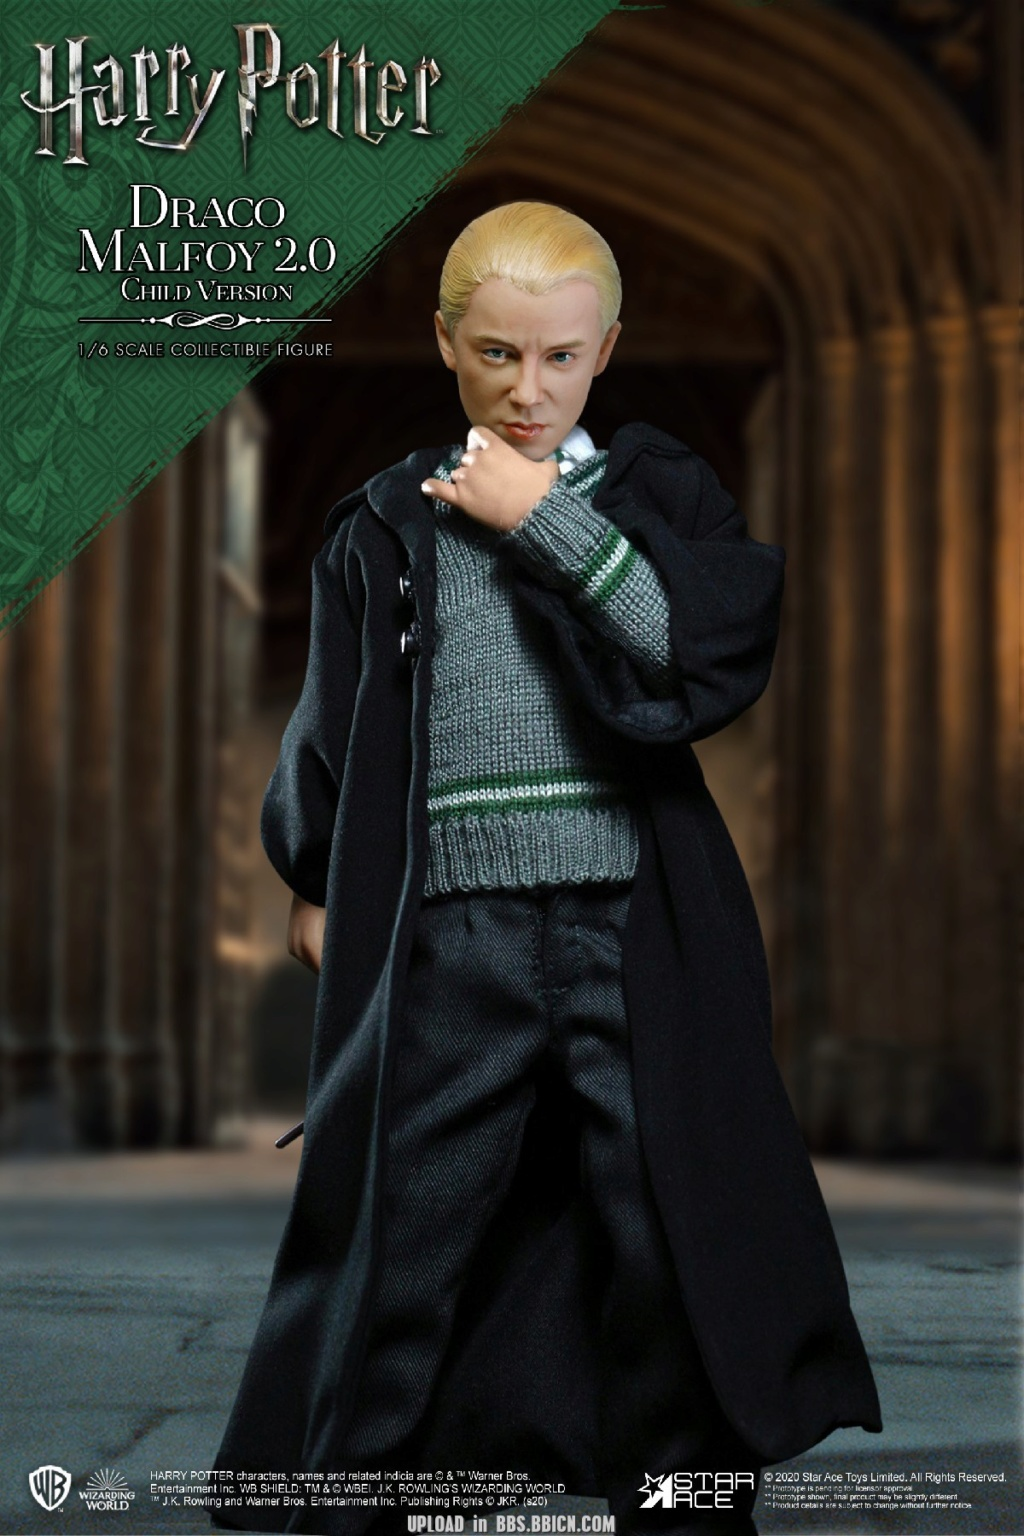 DracoMalfoy2 - NEW PRODUCT: STAR ACE Toys: 1/6 Harry Potter + Malfoy 2.0 Playing Set & Single & Uniform Edition 17081411